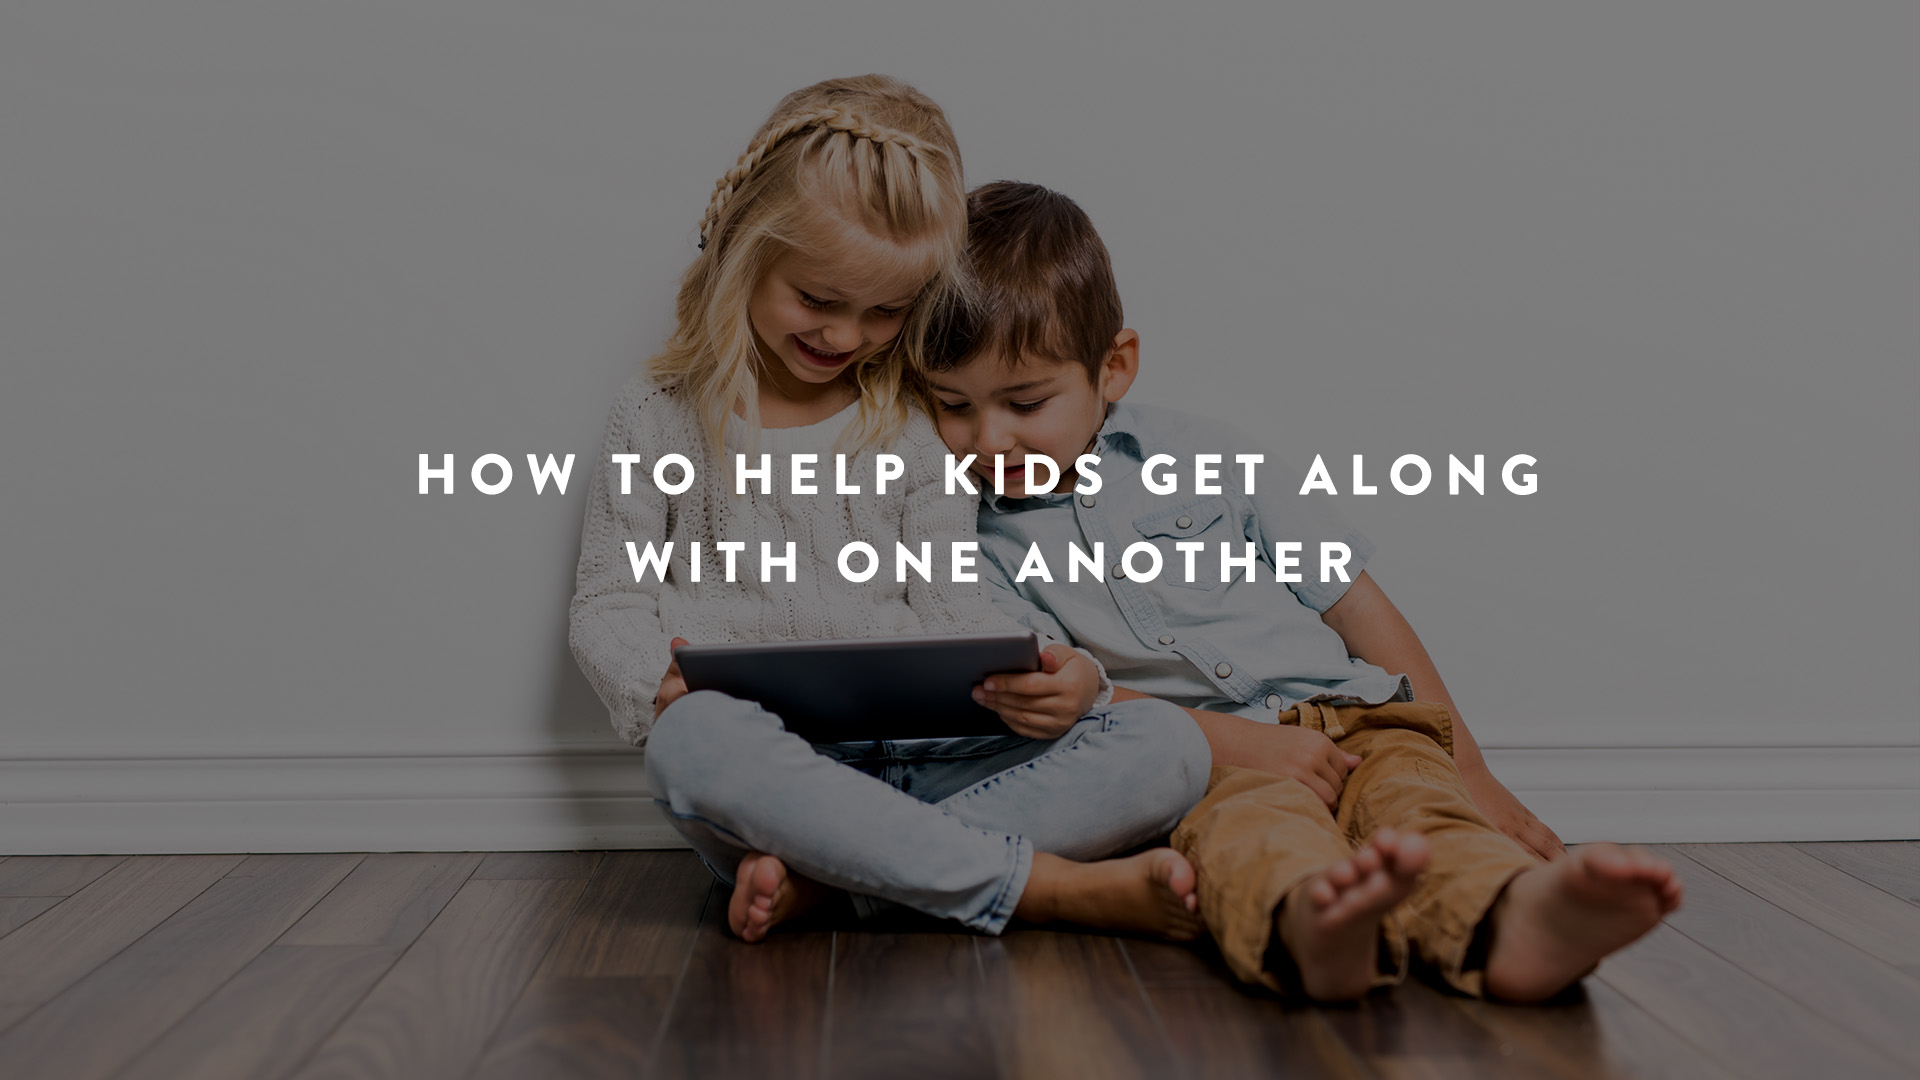 How to help kids get along